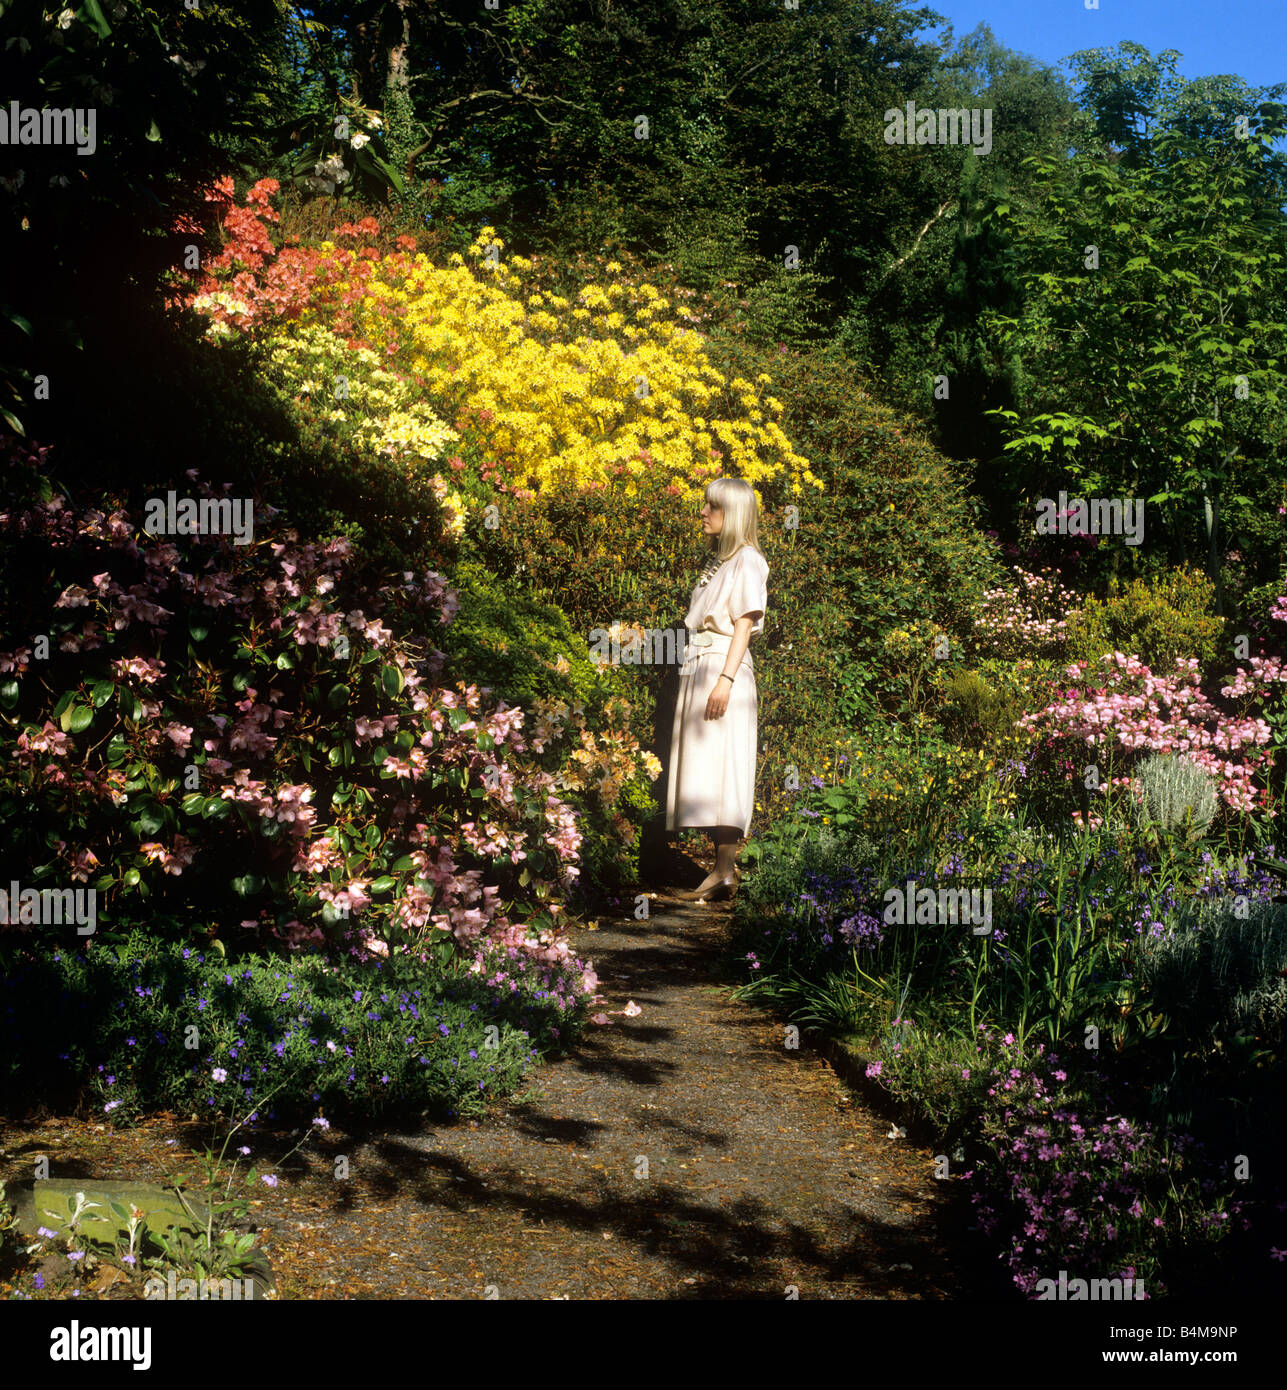 Cheshire Garden Spring Path Stock Photos & Cheshire Garden Spring ...